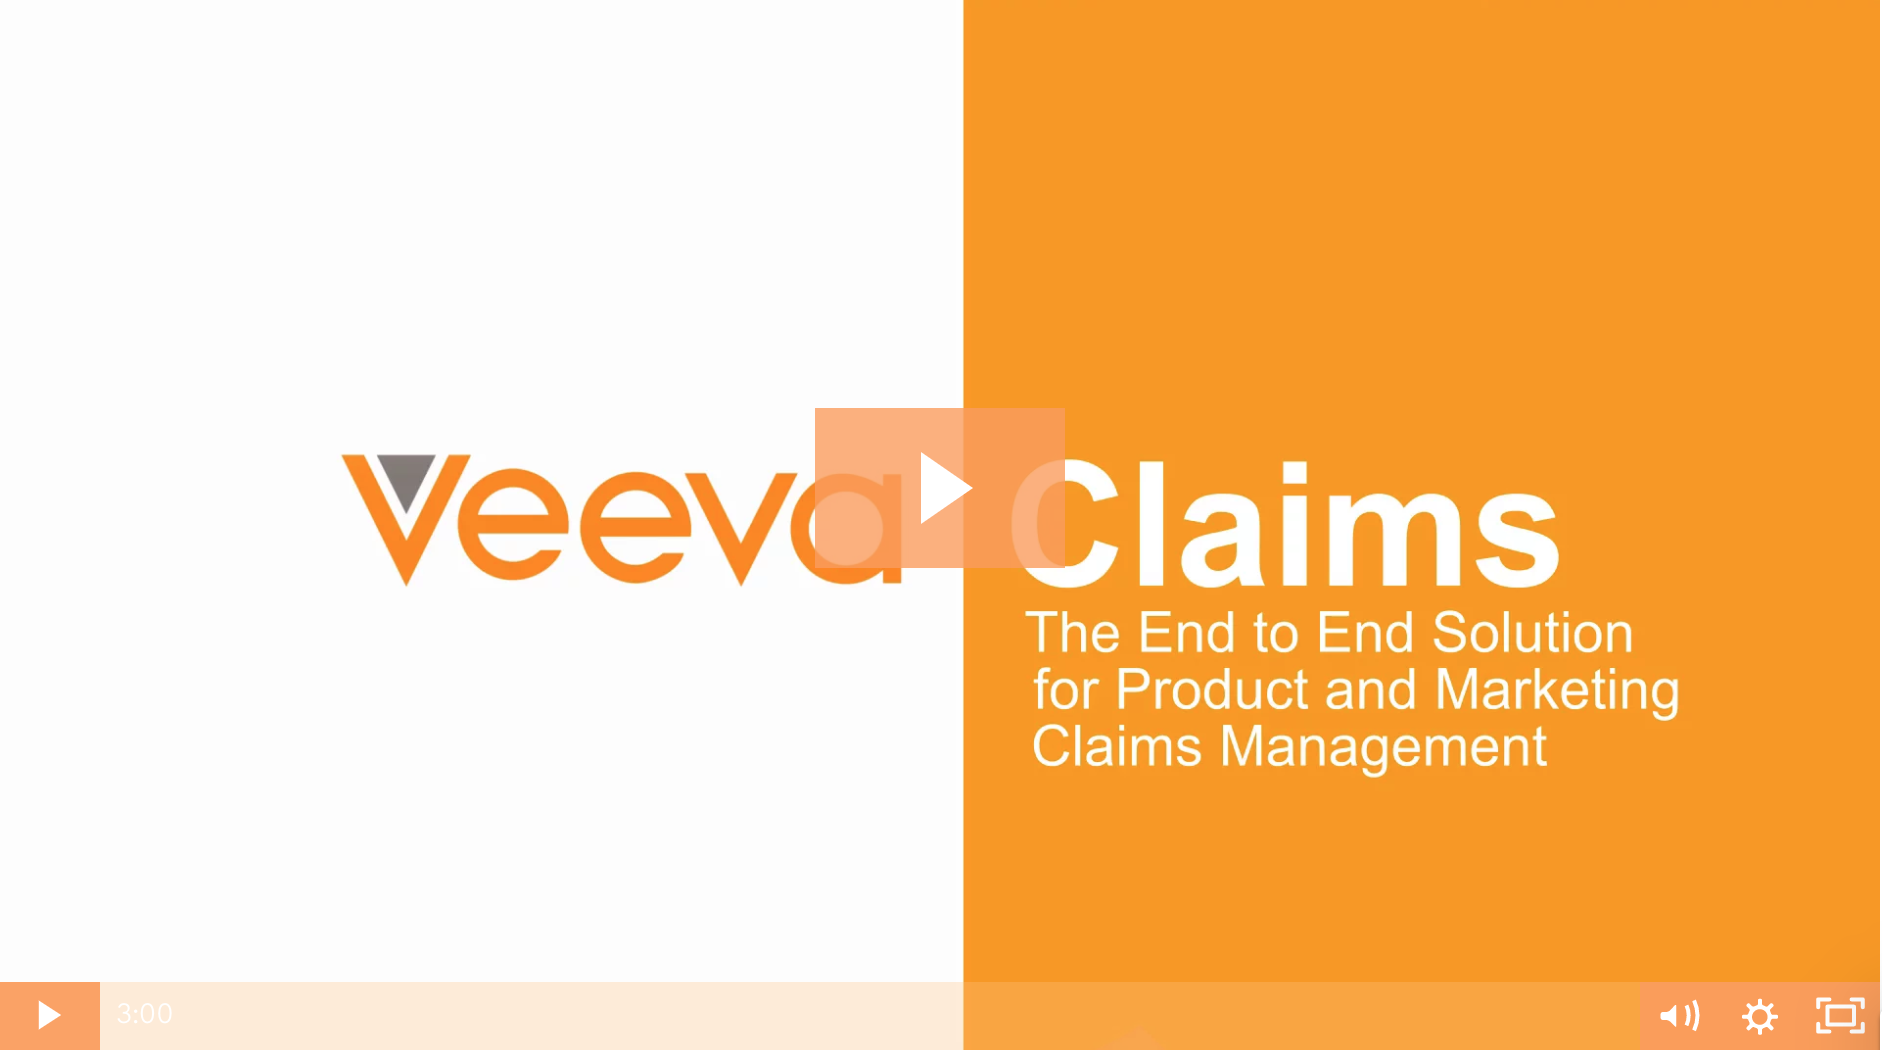 Claims - the end to end solution